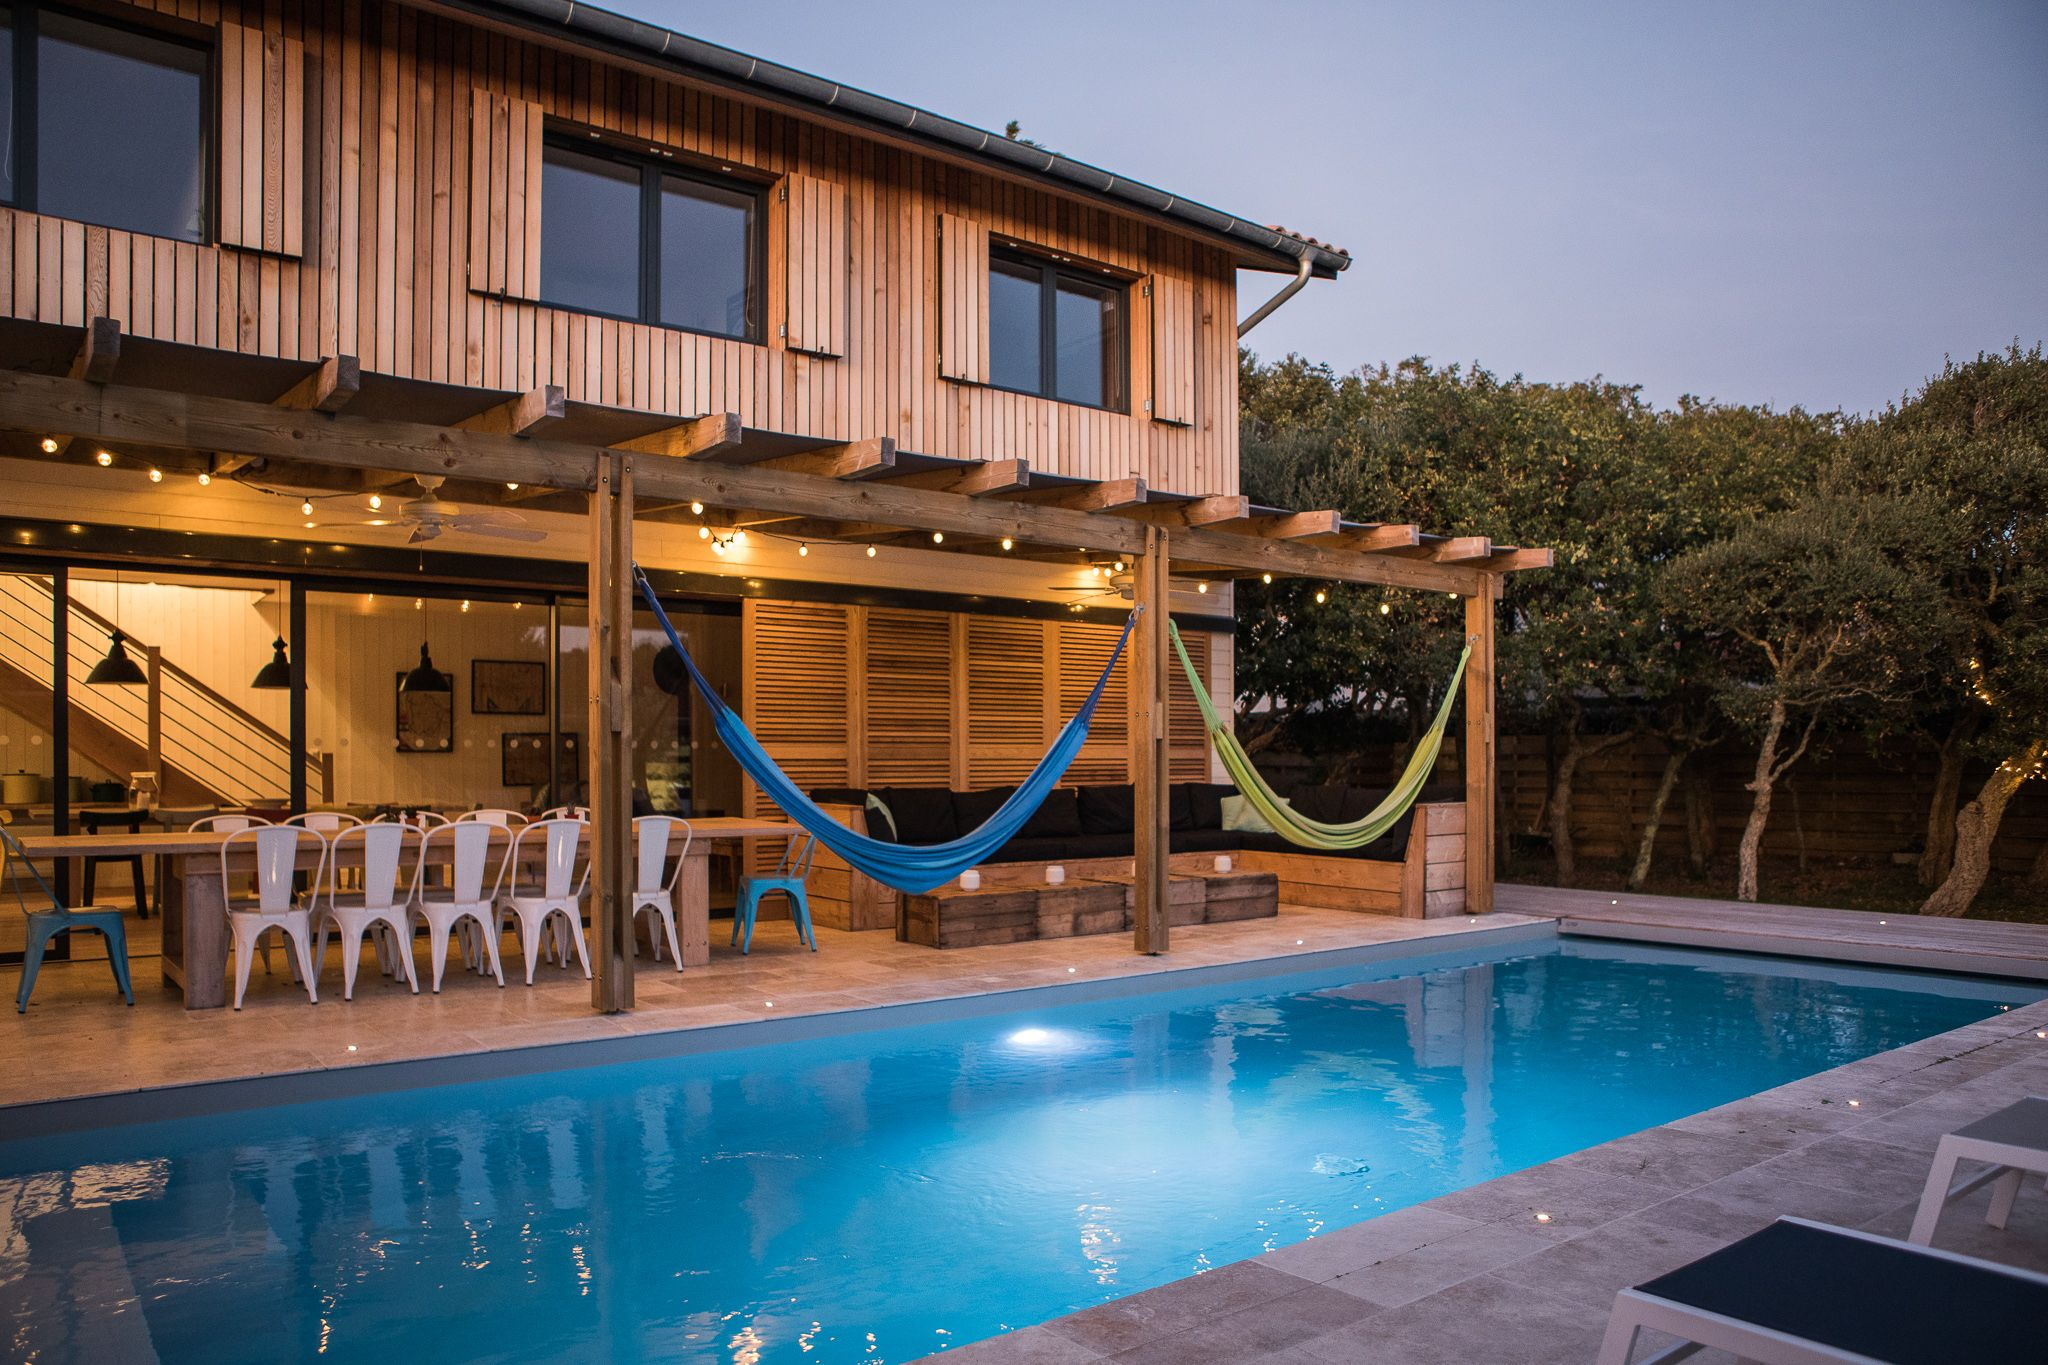 106 Beach House Hossegor Aquitaine South West France Luxury Just